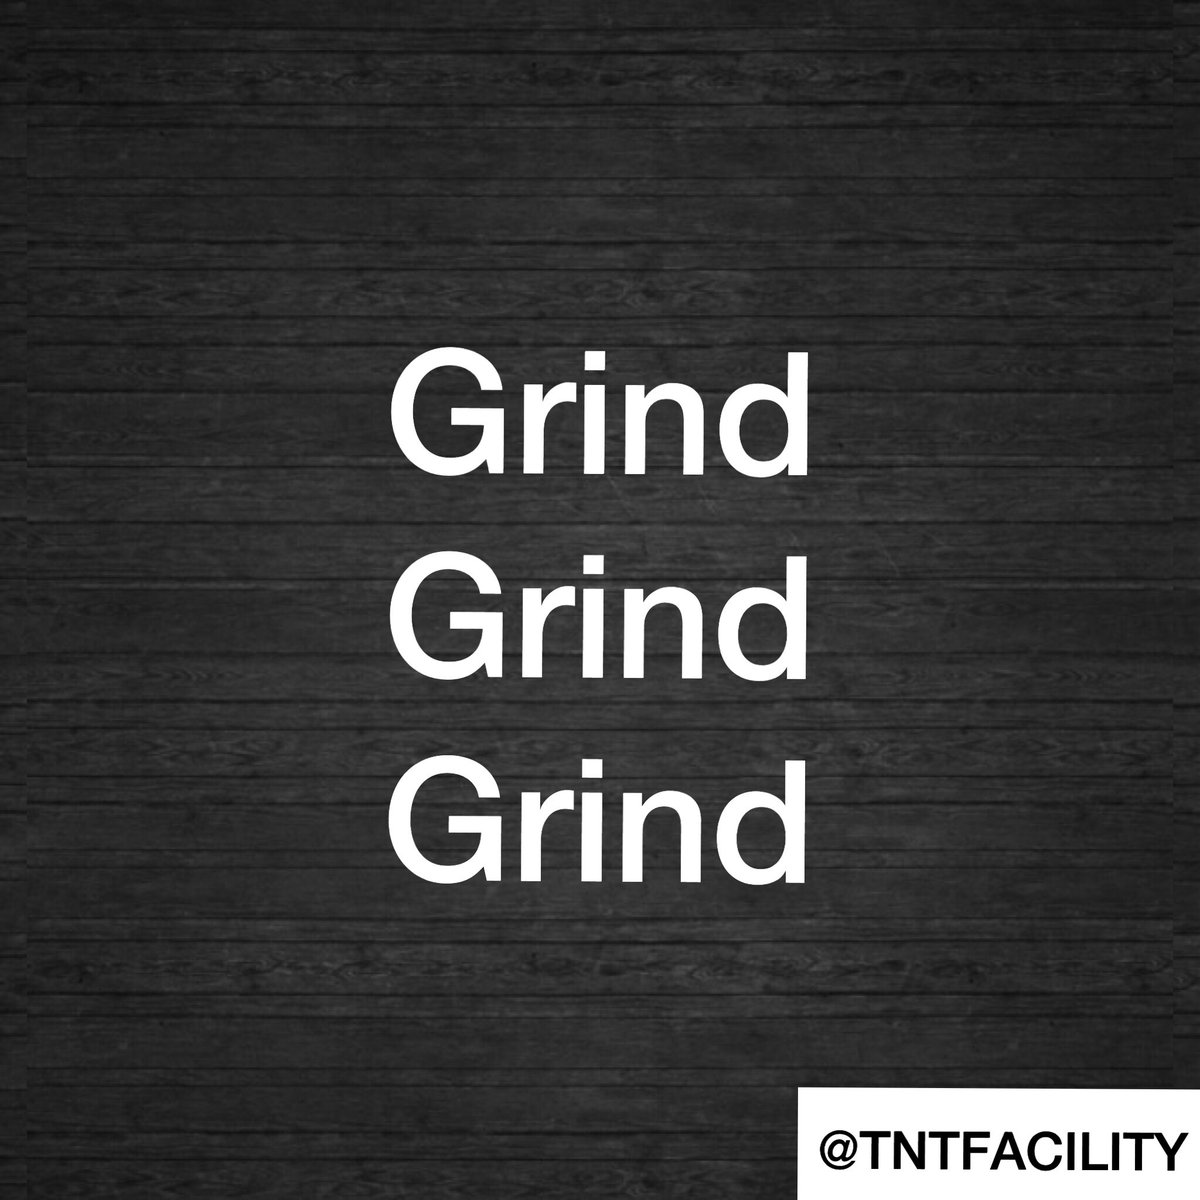 Tnt Facility On Twitter All I Know Grind Grind Grind